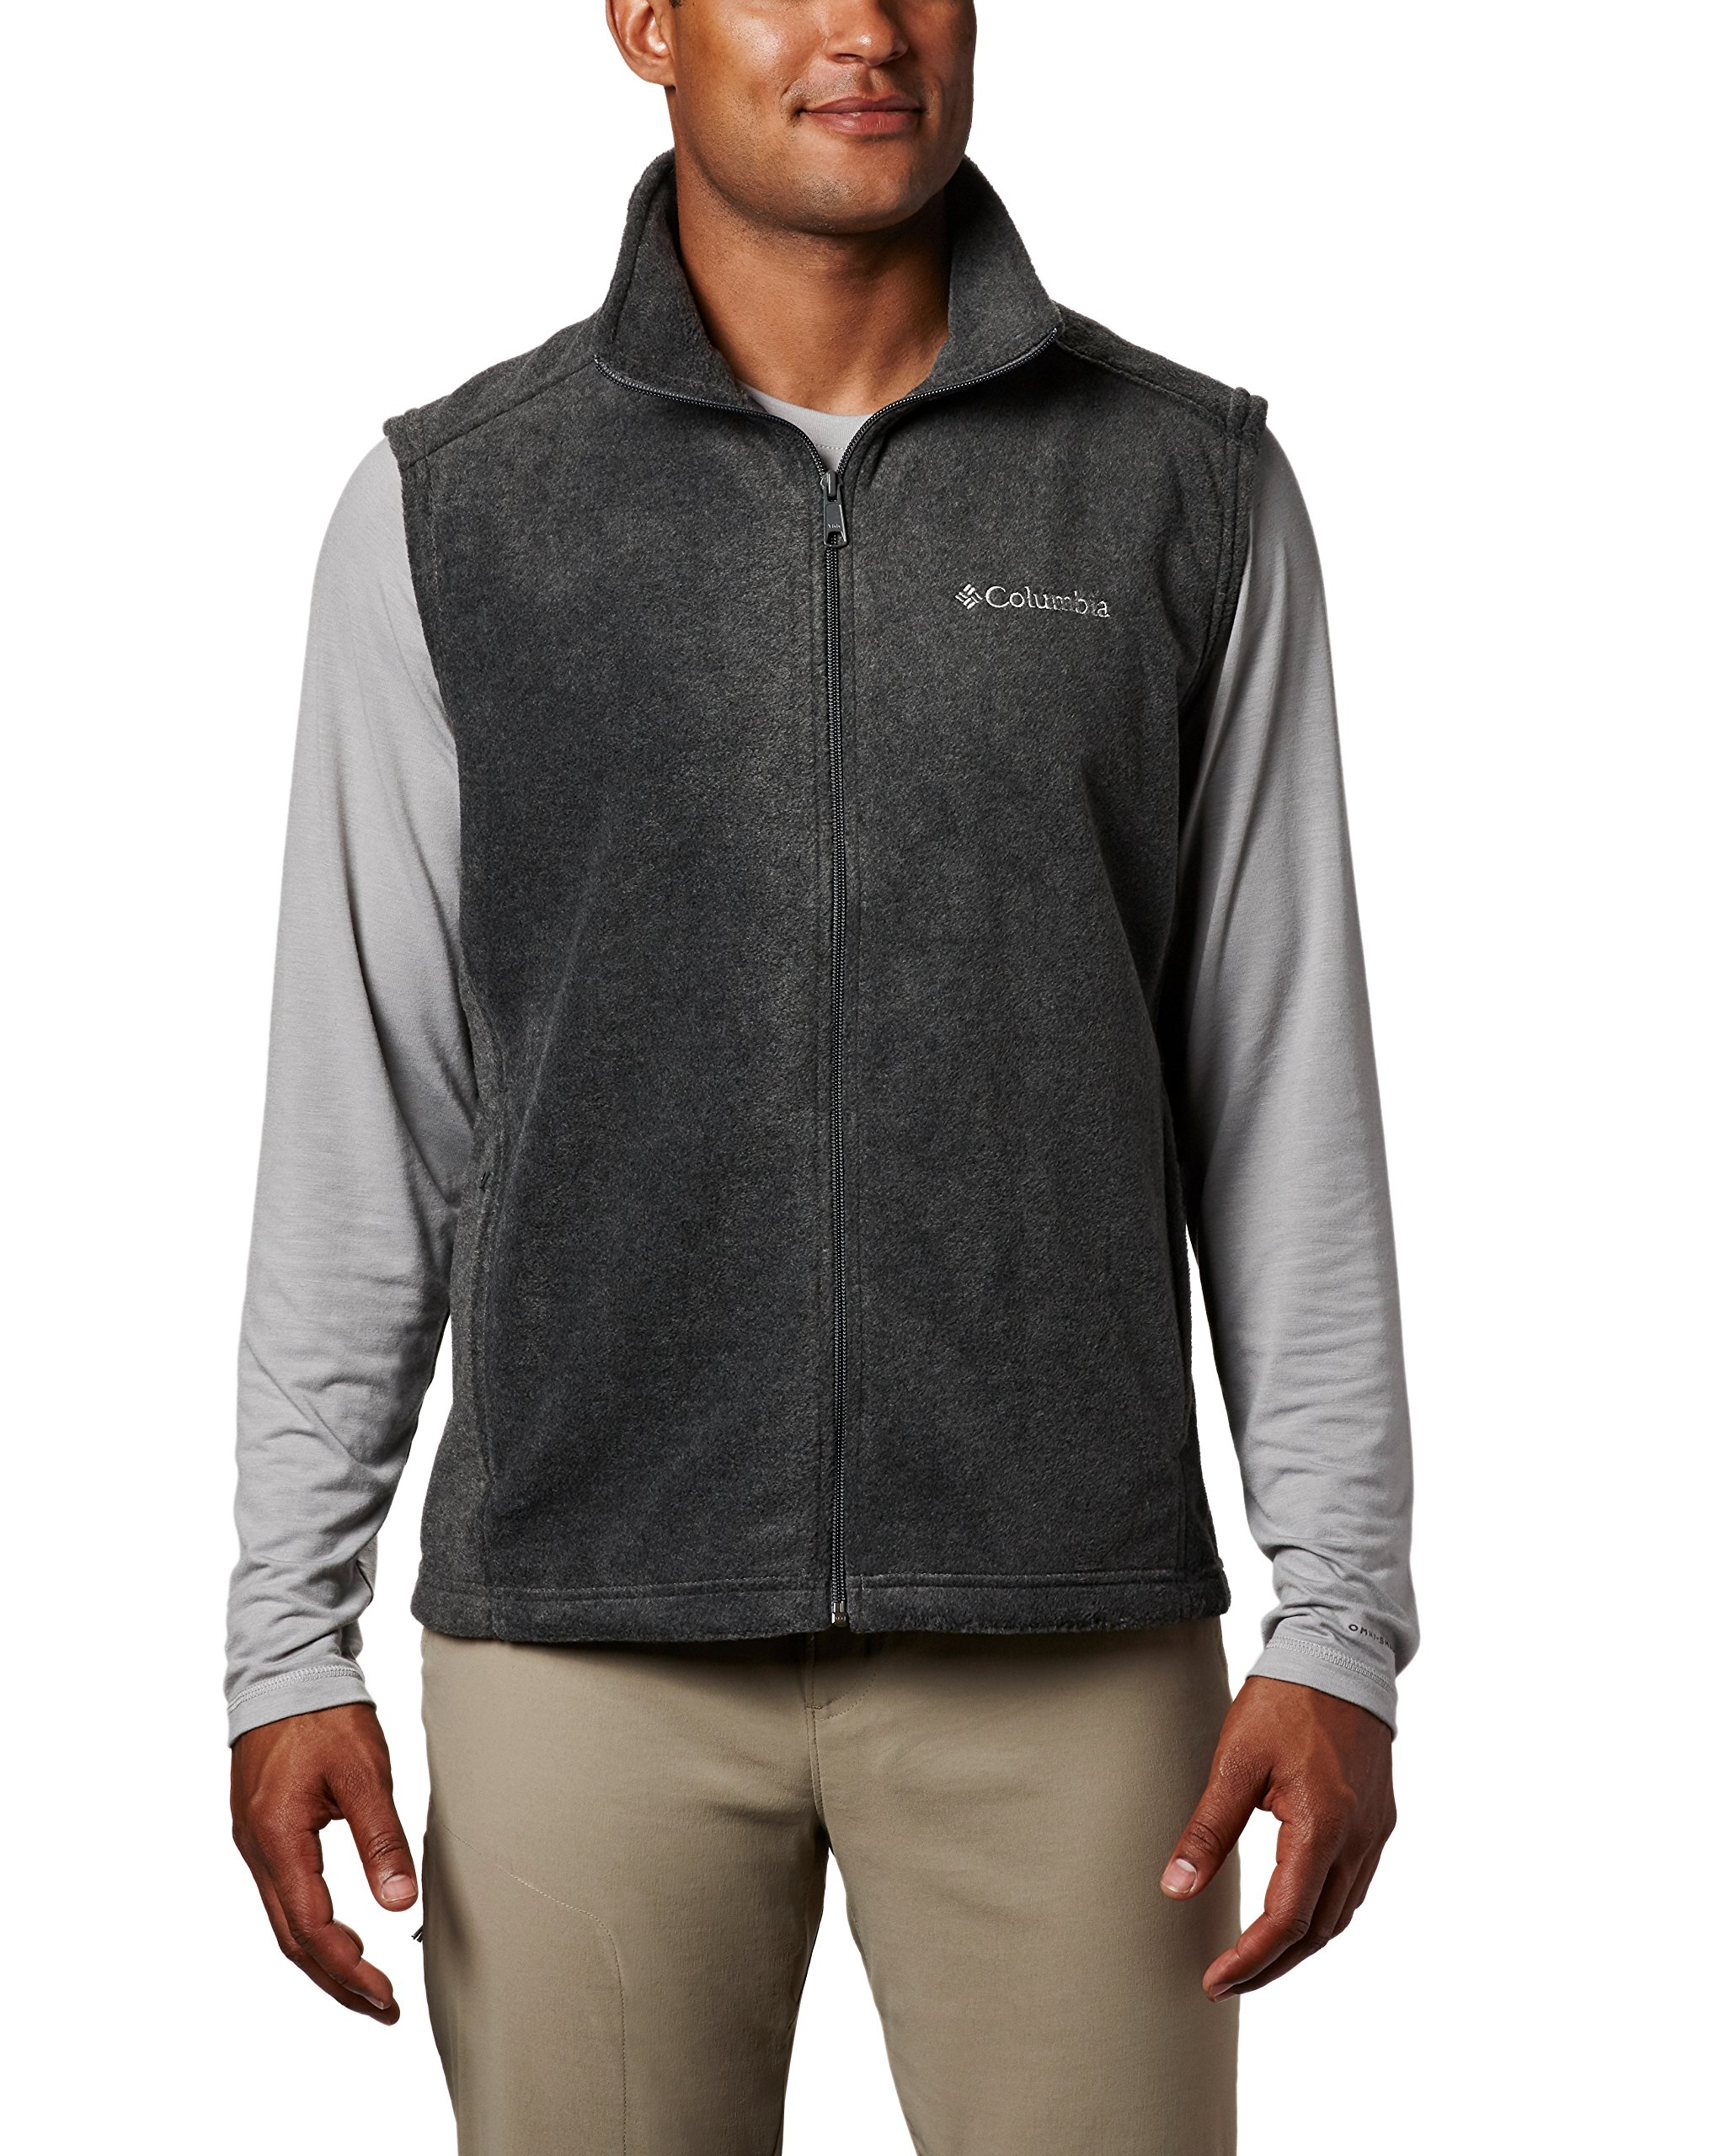 Columbia Men's Steens Mountain Full Zip Soft Fleece Vest, Charcoal Heather, Medium